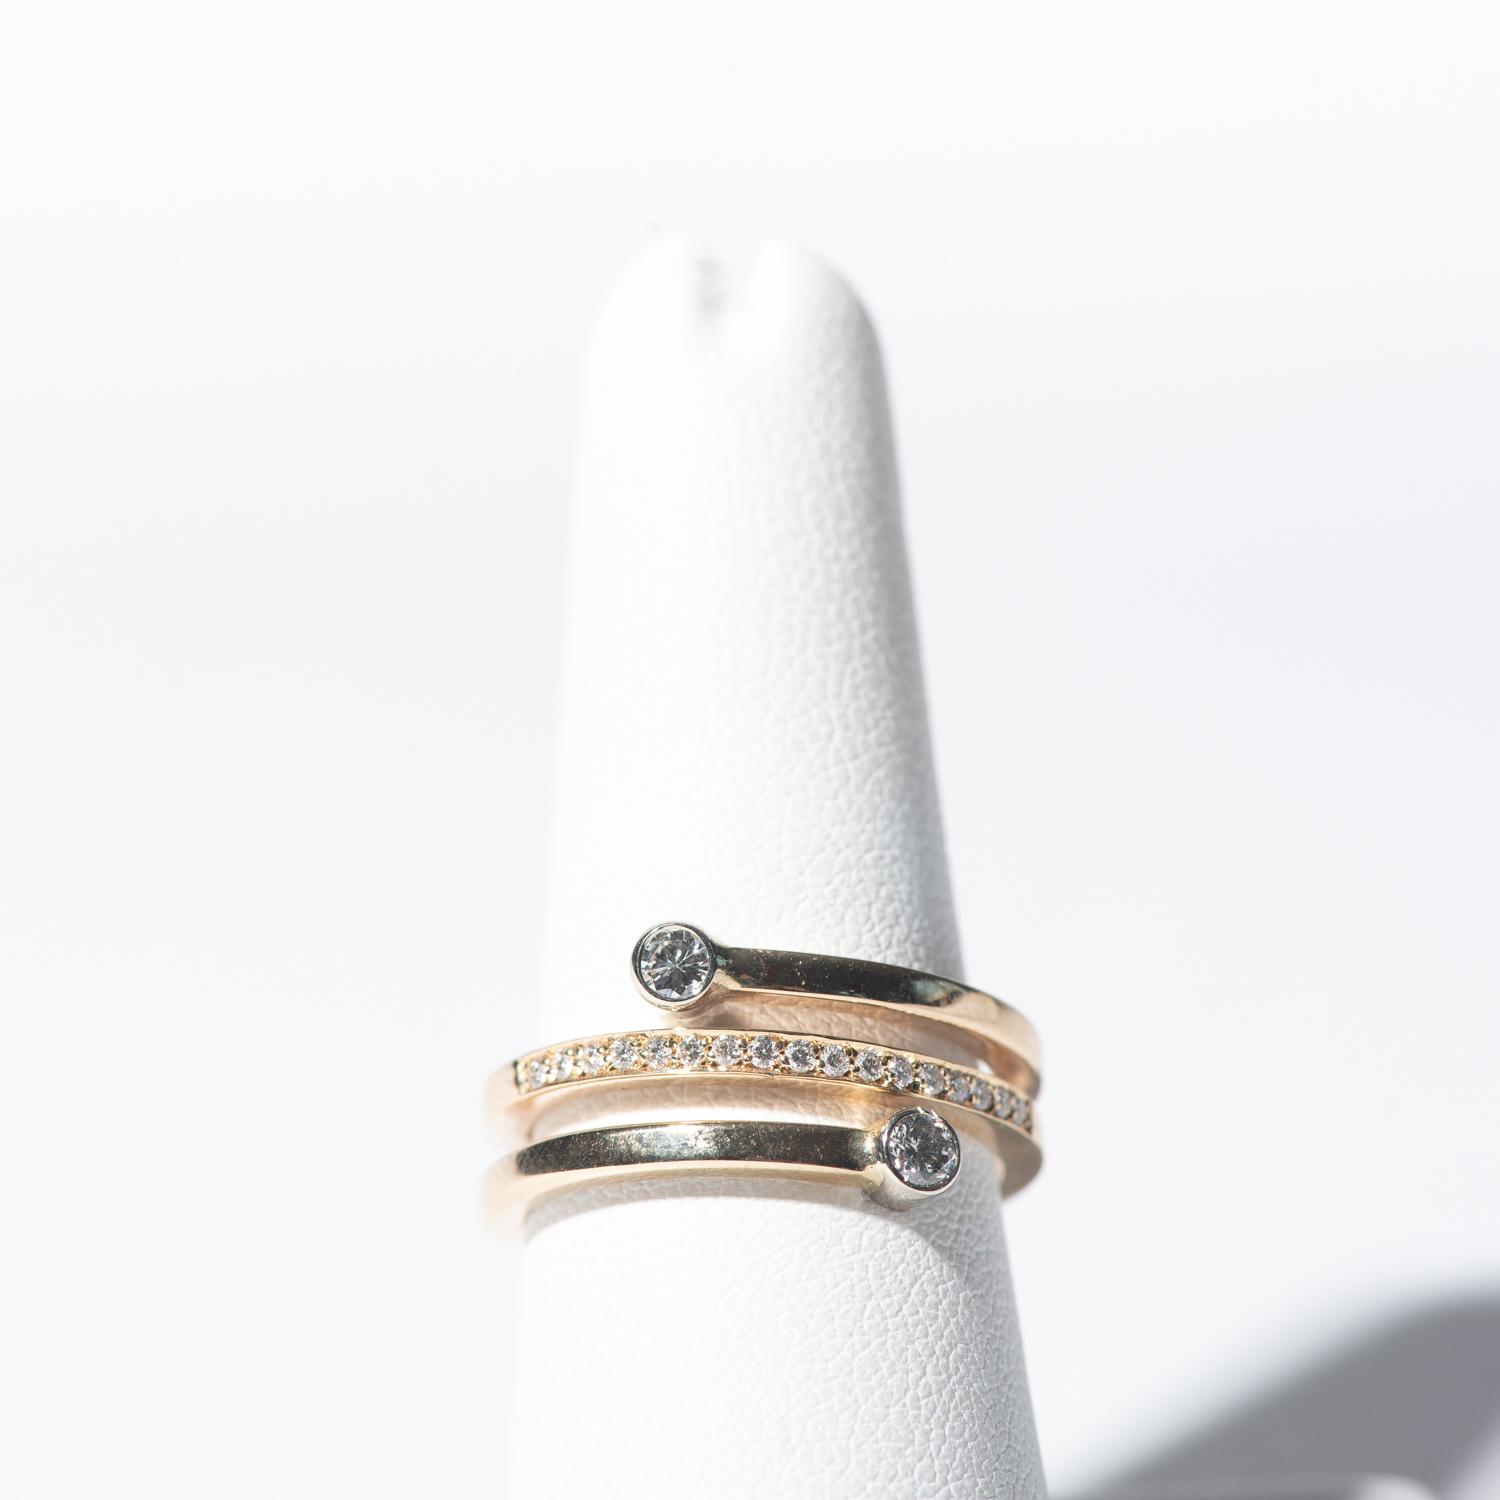 Design Seven. - Double Dot Wrap Ring in 14k Yellow Gold with Diamond Band Accent